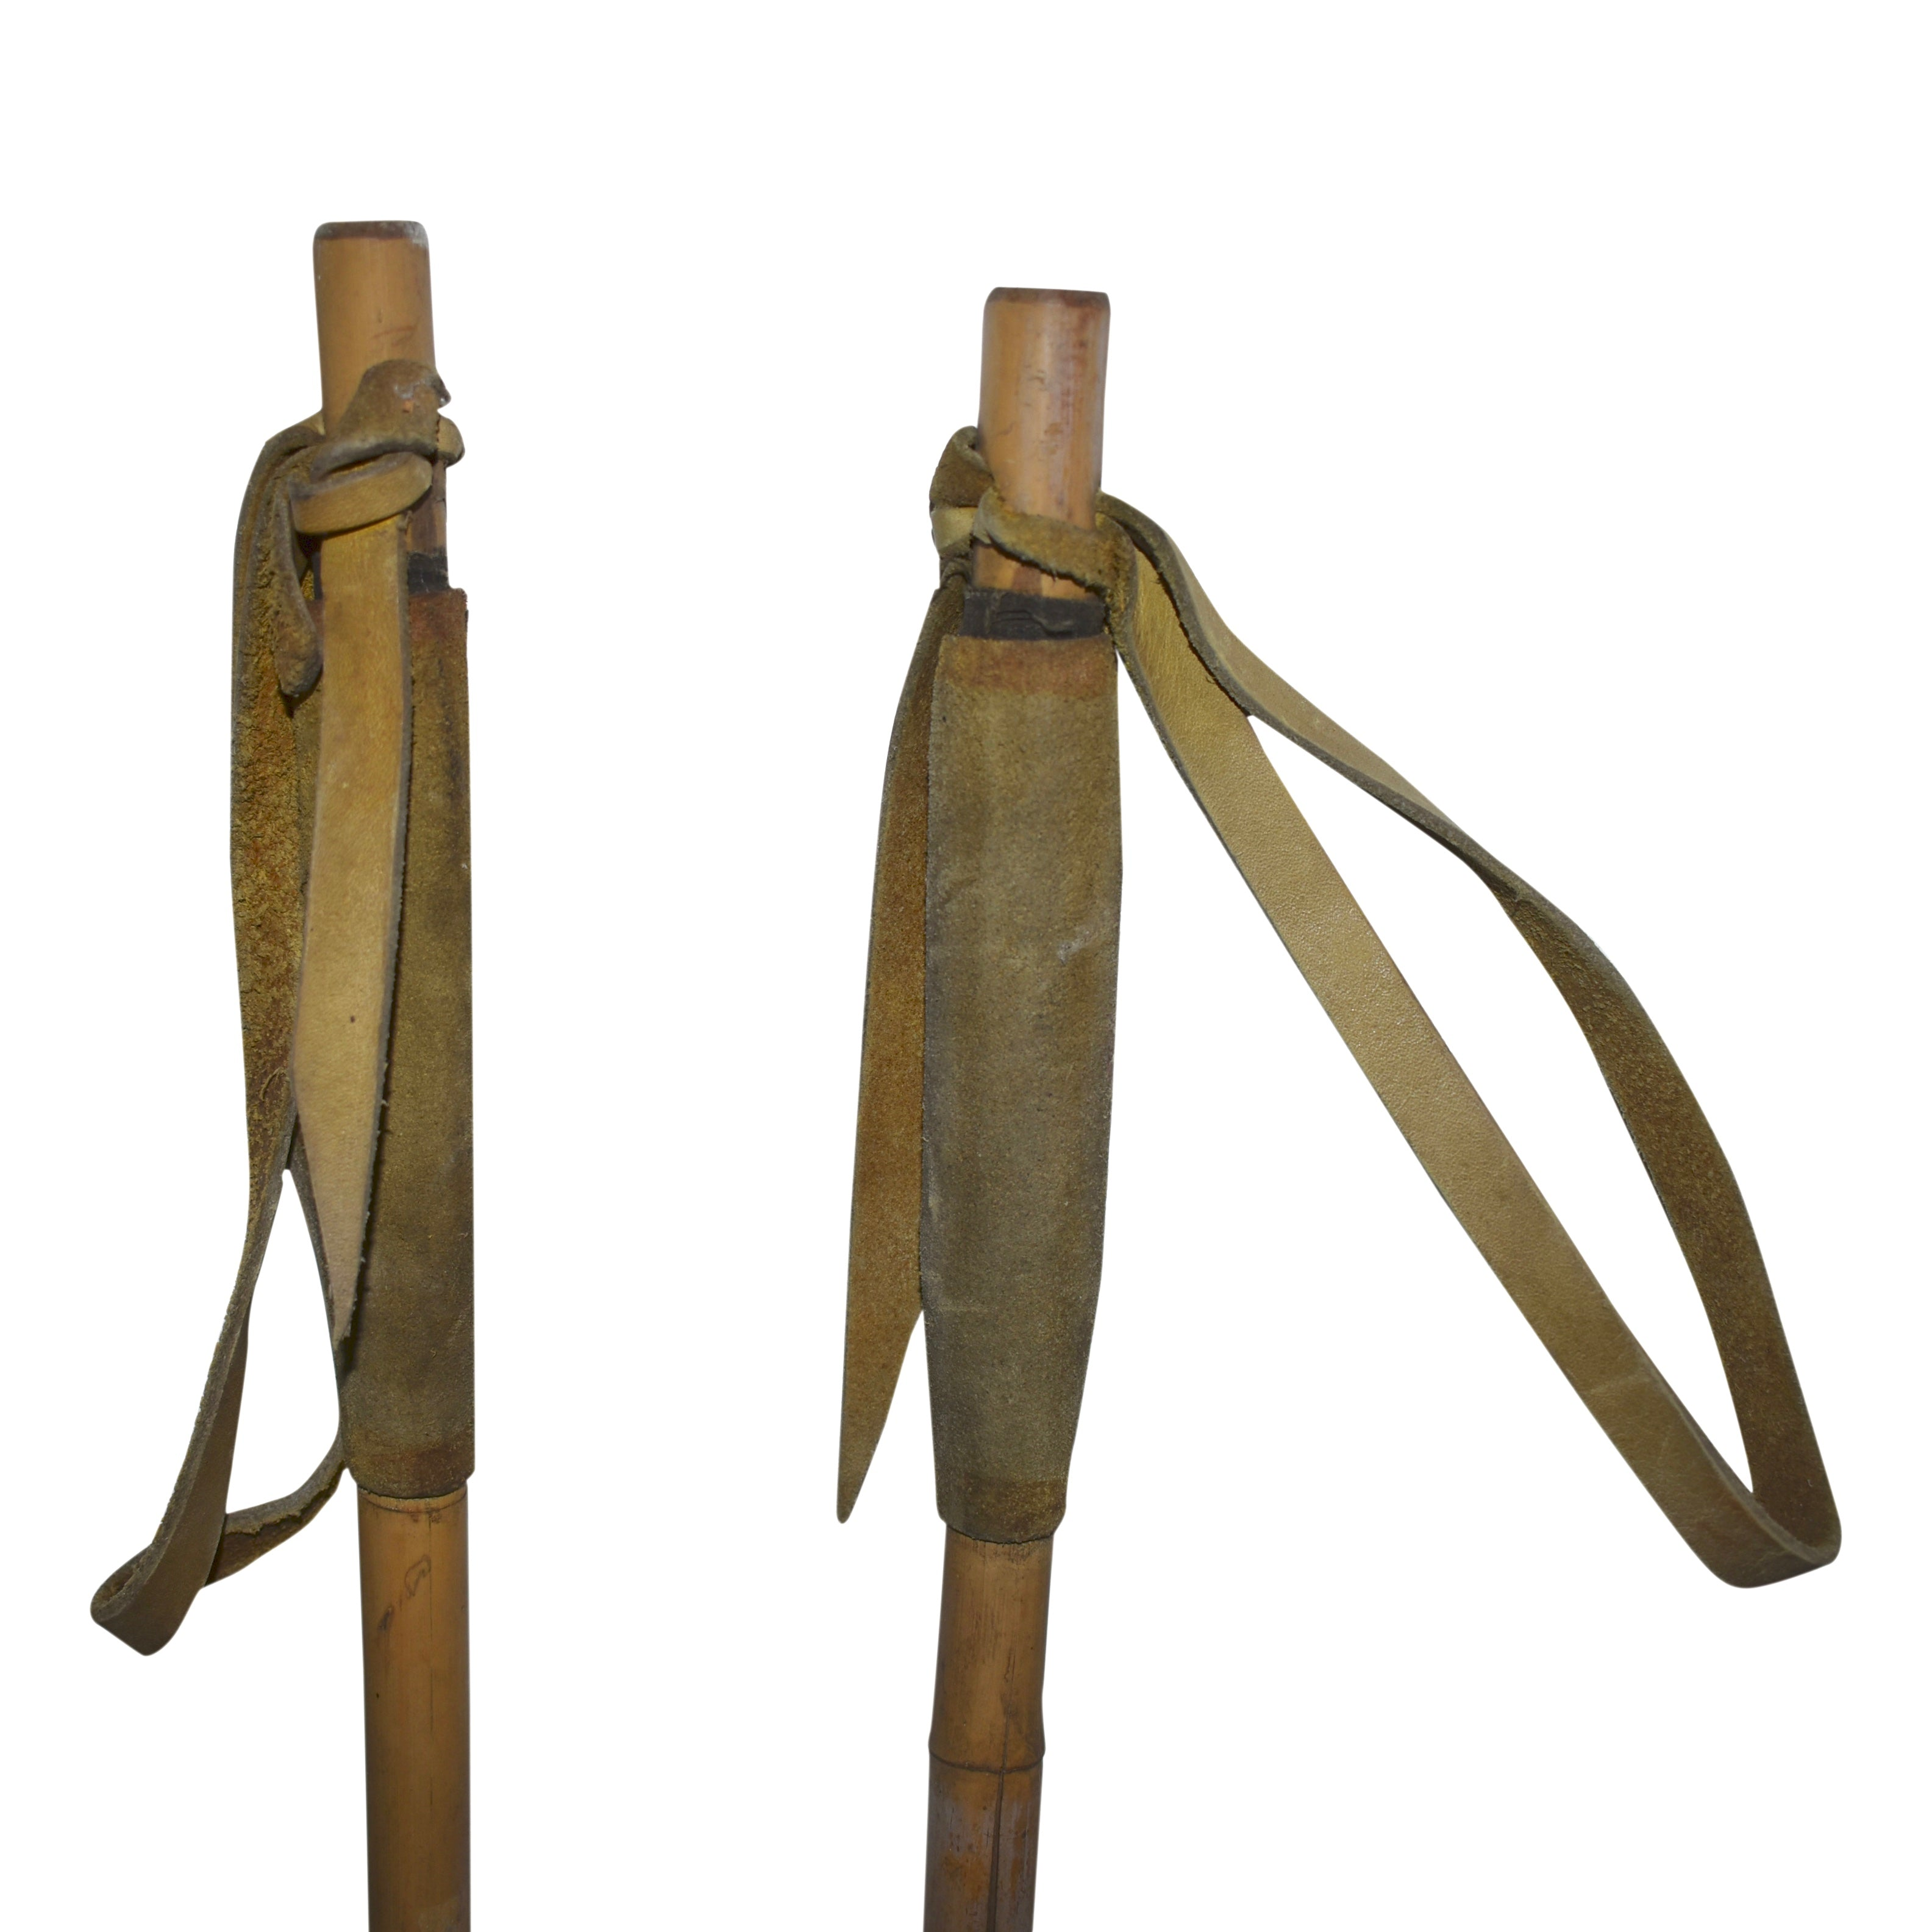 Long Bamboo Ski Poles with Leather Grips